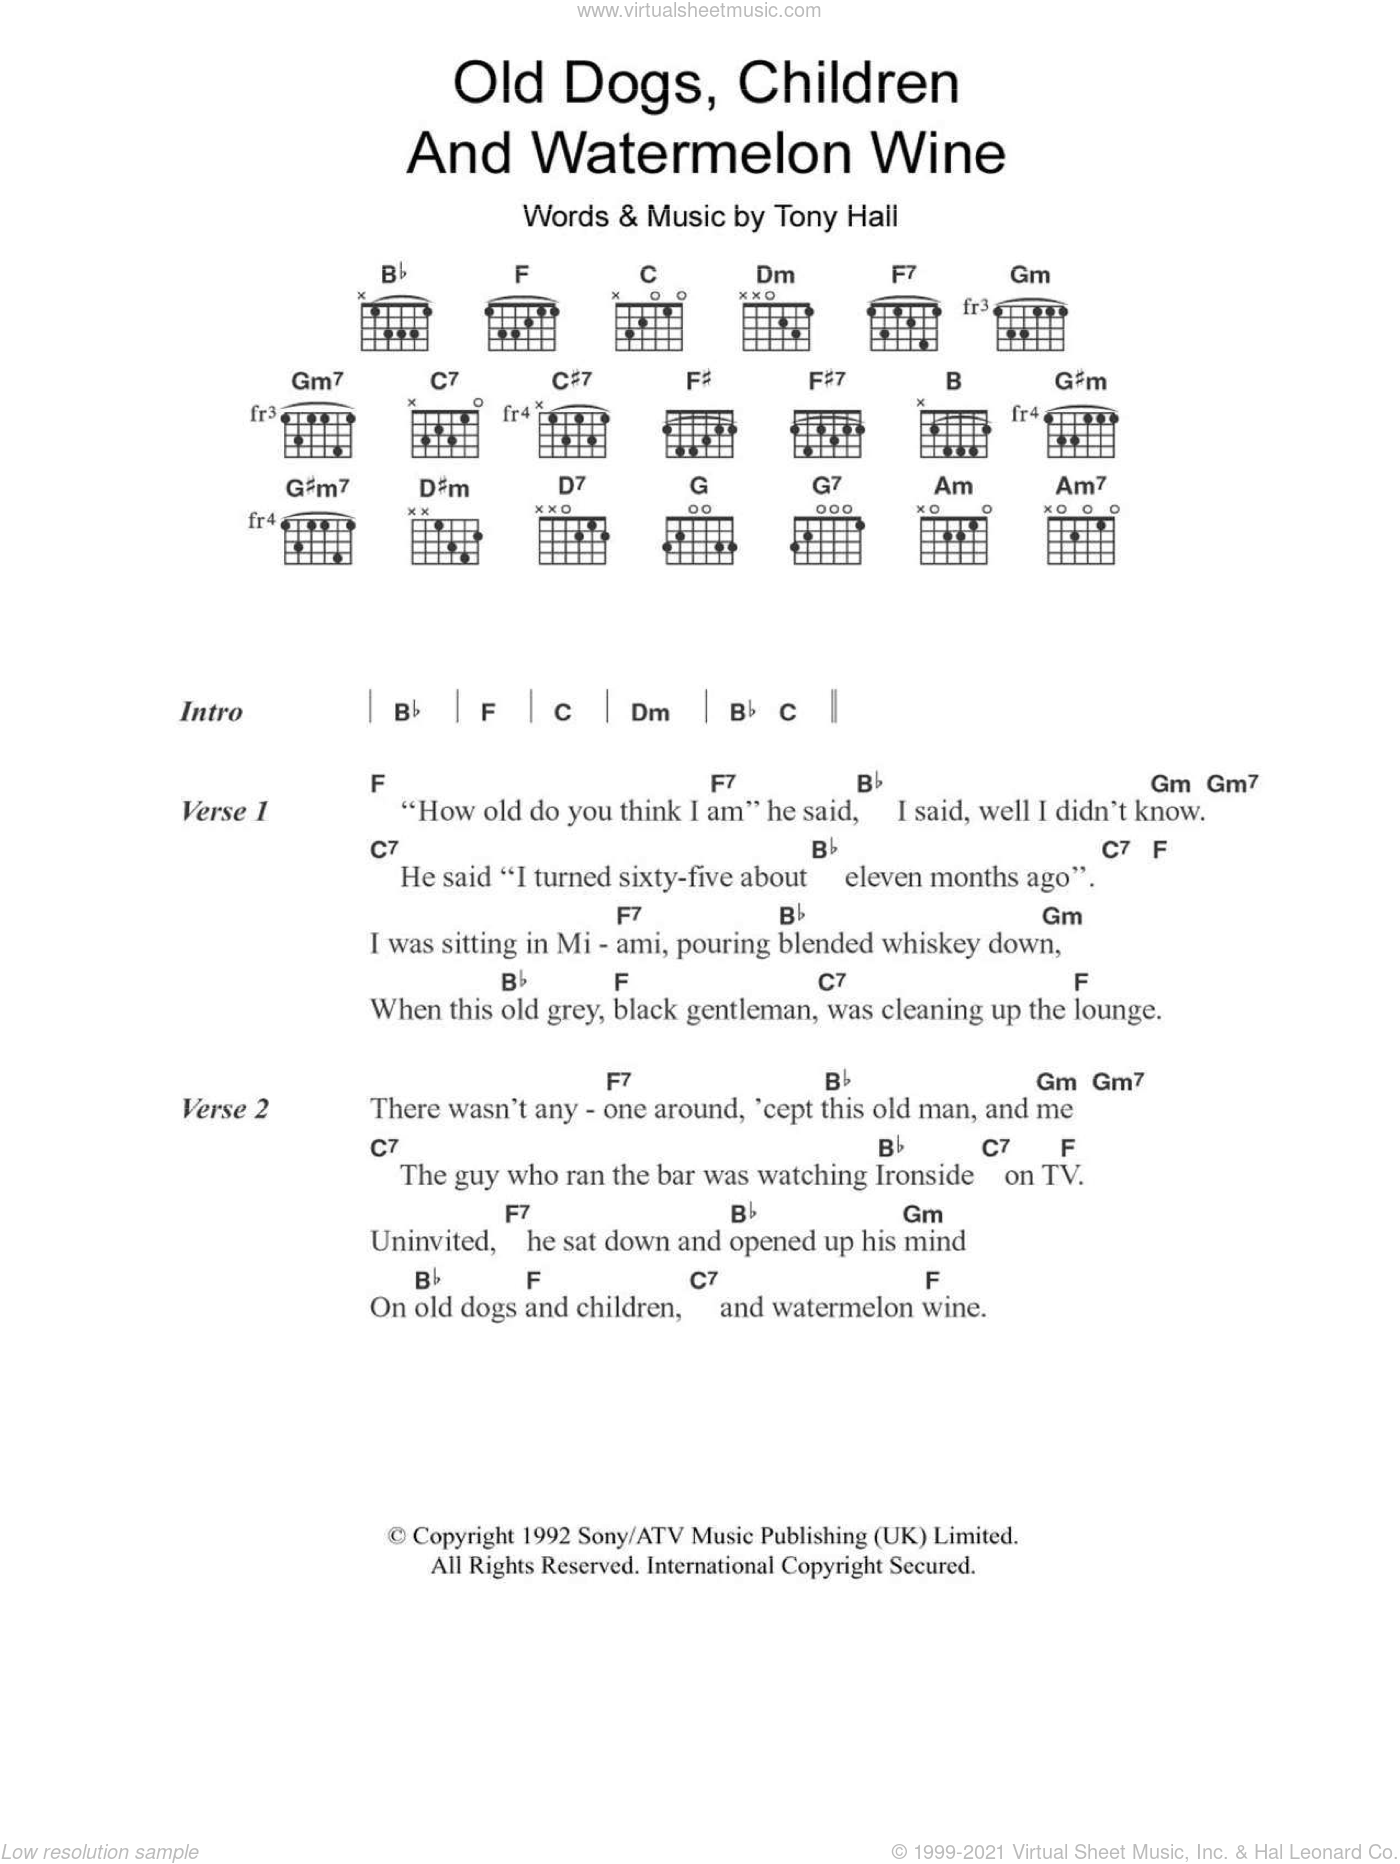 Old Dogs, Children And Watermelon Wine sheet music for guitar (chords) by Tony Hall